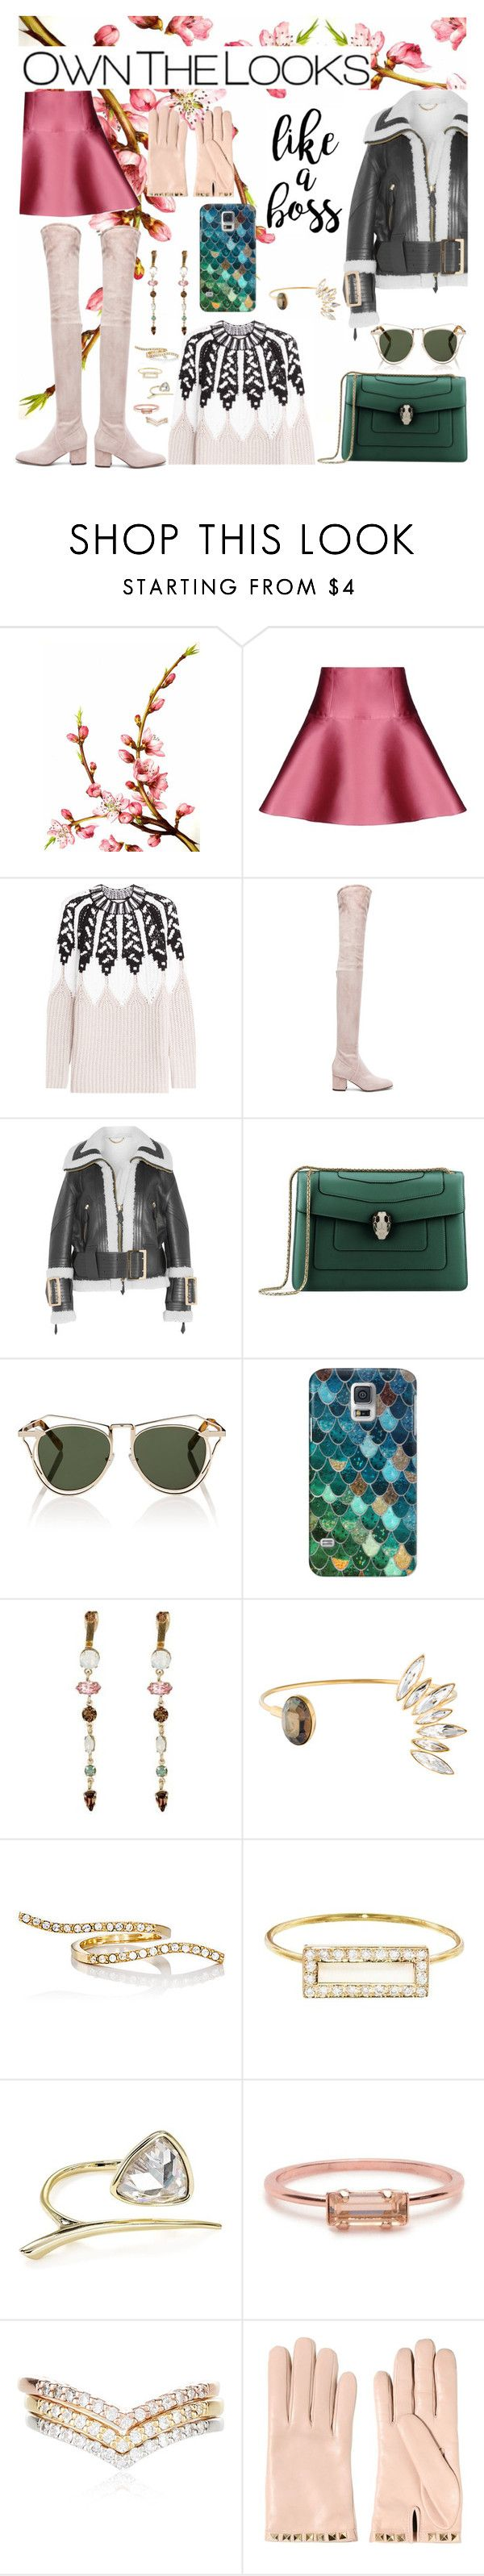 """""""Untitled #816"""" by adda21 ❤ liked on Polyvore featuring Language Of Flowers, RED Valentino, Peter Pilotto, Valentino, Burberry, Bulgari, Karen Walker, Casetify, Jules Smith and CA&LOU"""